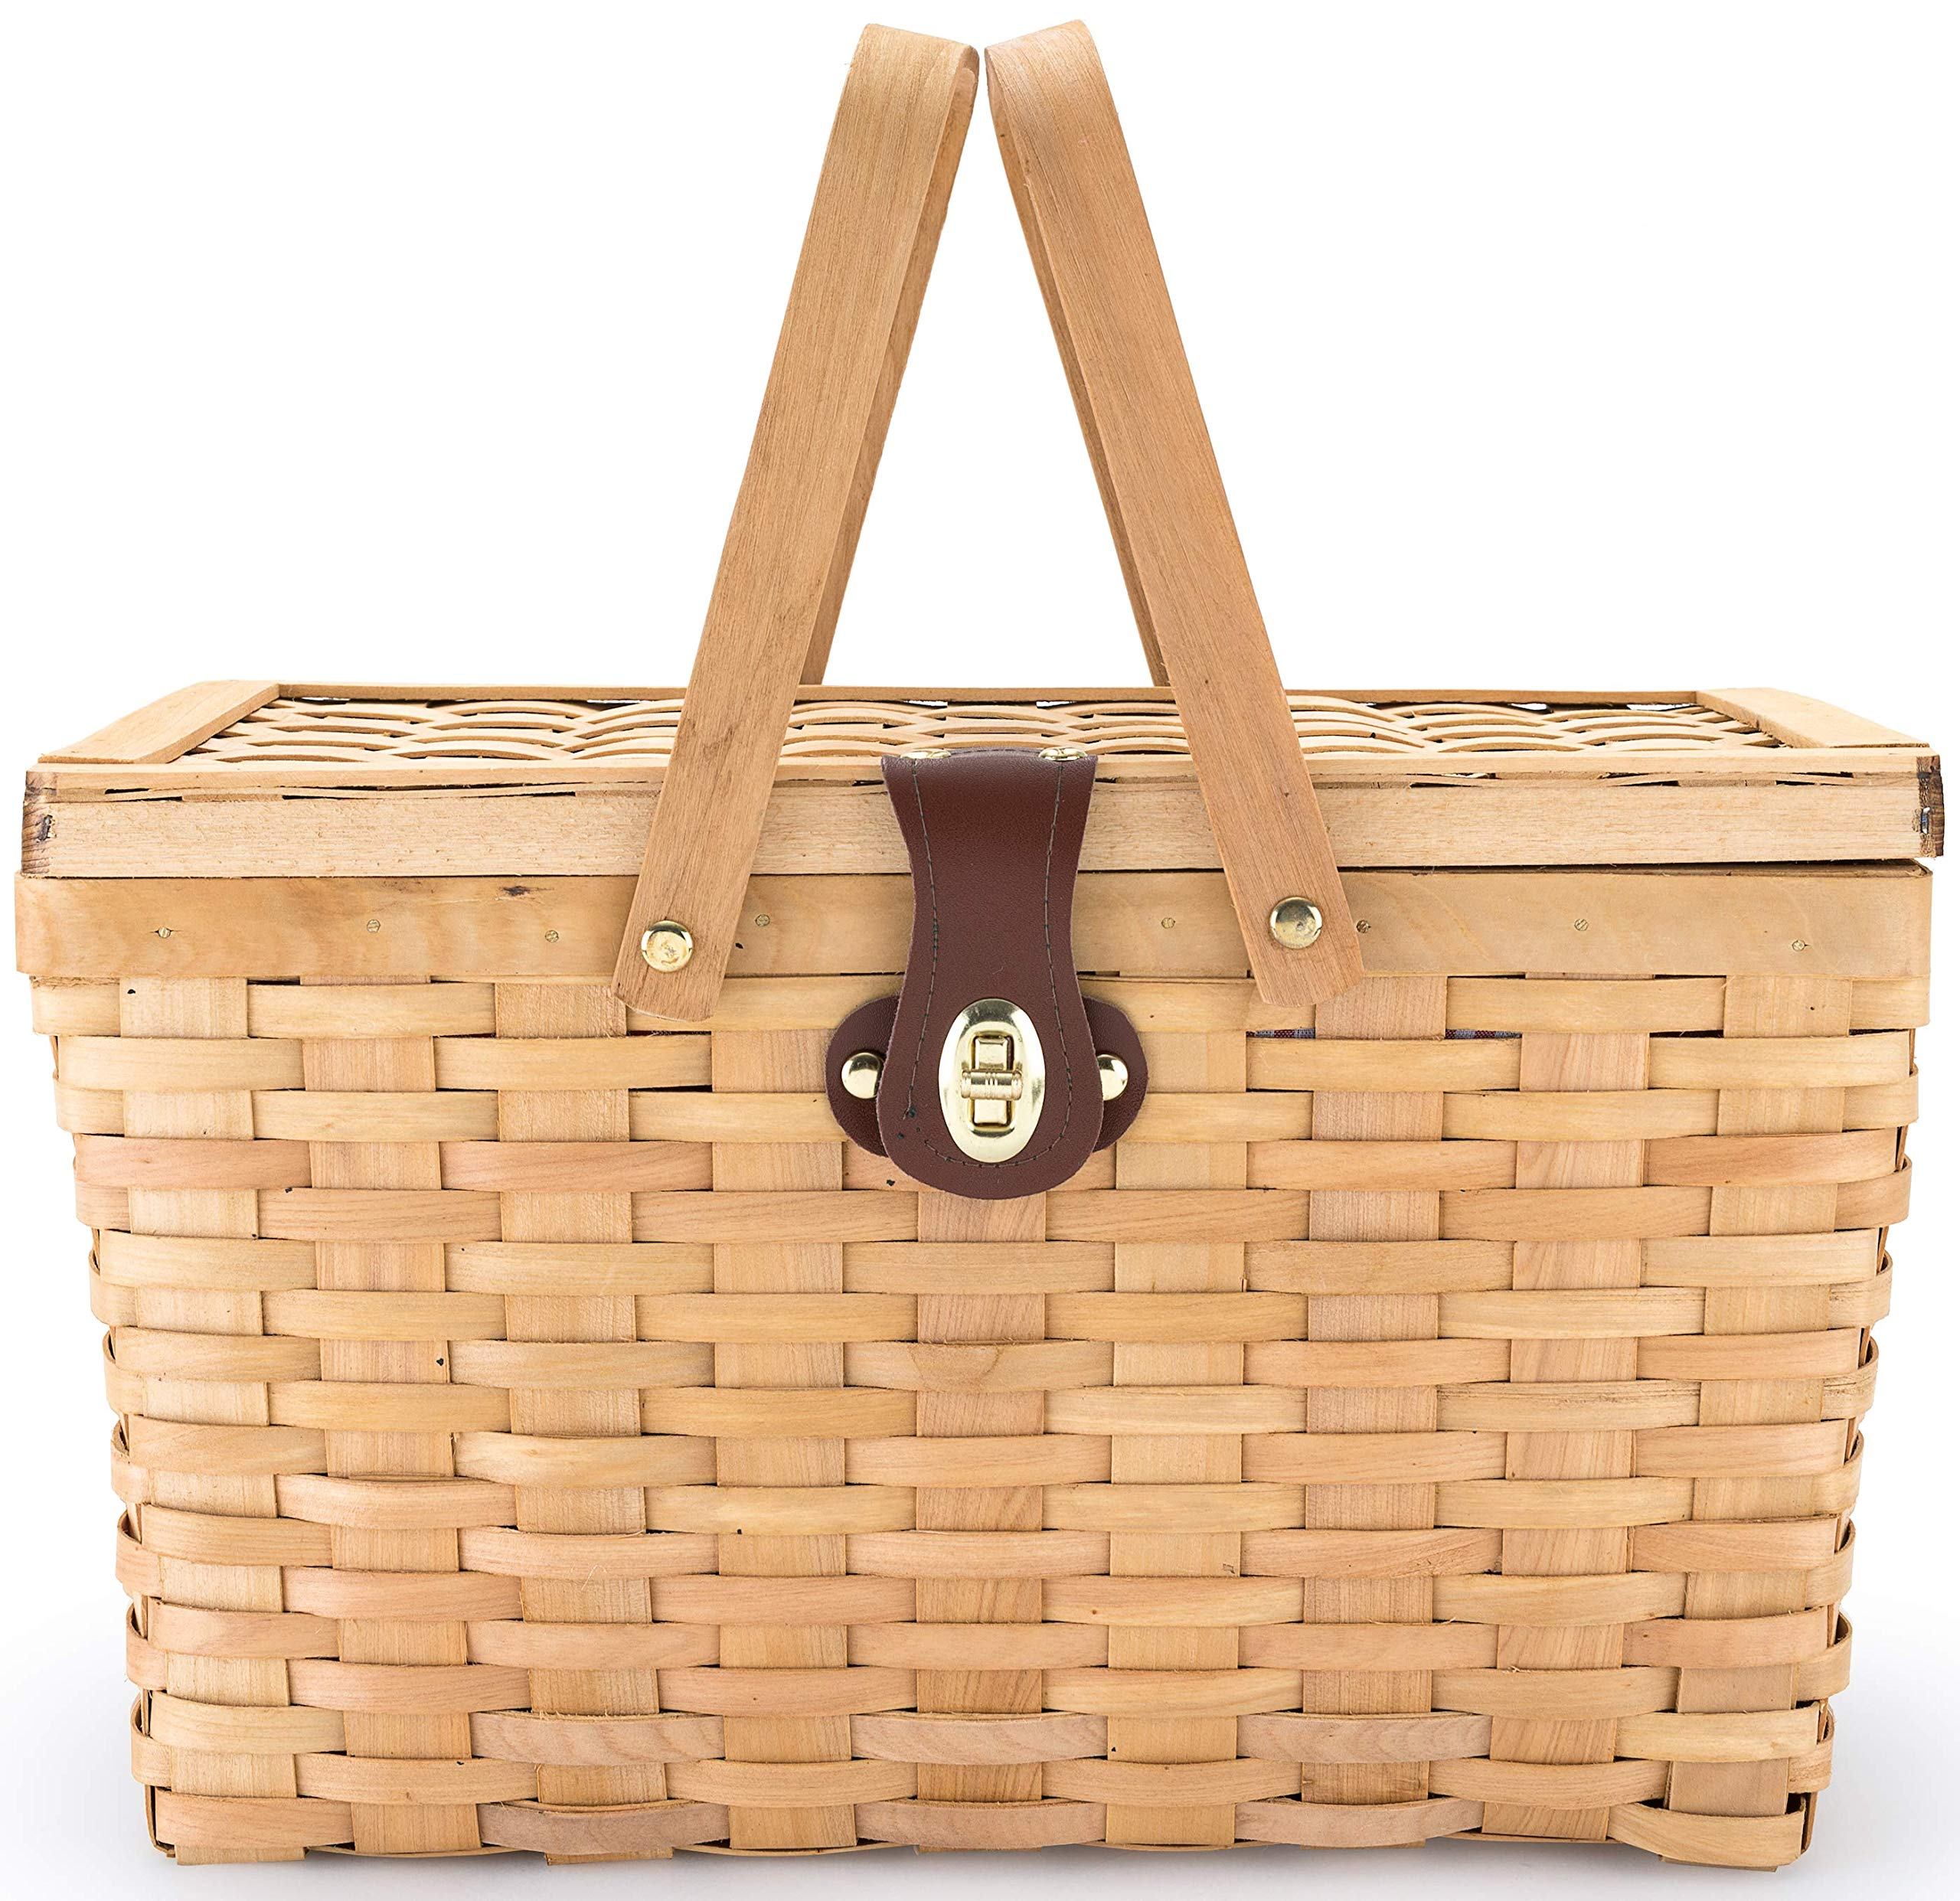 Picnic Basket | Wood Chip Design | Red and White Gingham Pattern Lining | Strong Wooden Folding Handles | Features a Leather Strap Metal Lock for Safety | Natural Eco Friendly Woven Woodchip Basket by CALIFORNIA PICNIC